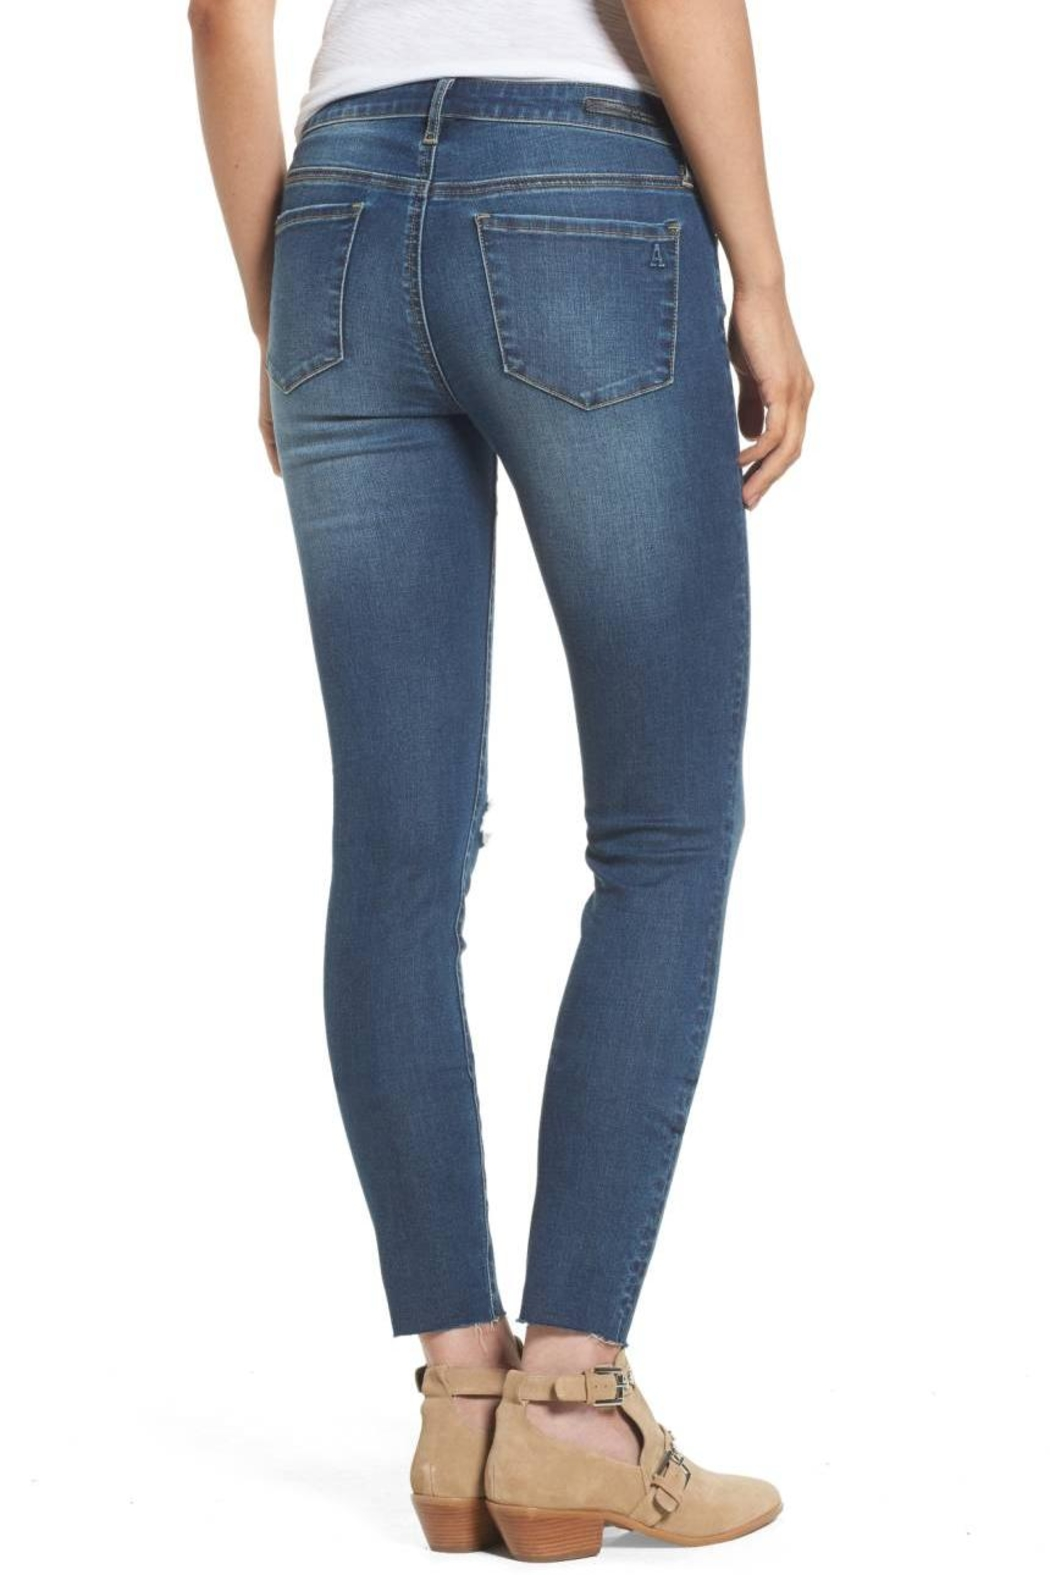 Articles of Society Sarah Raw Hem Jeans - Front Full Image